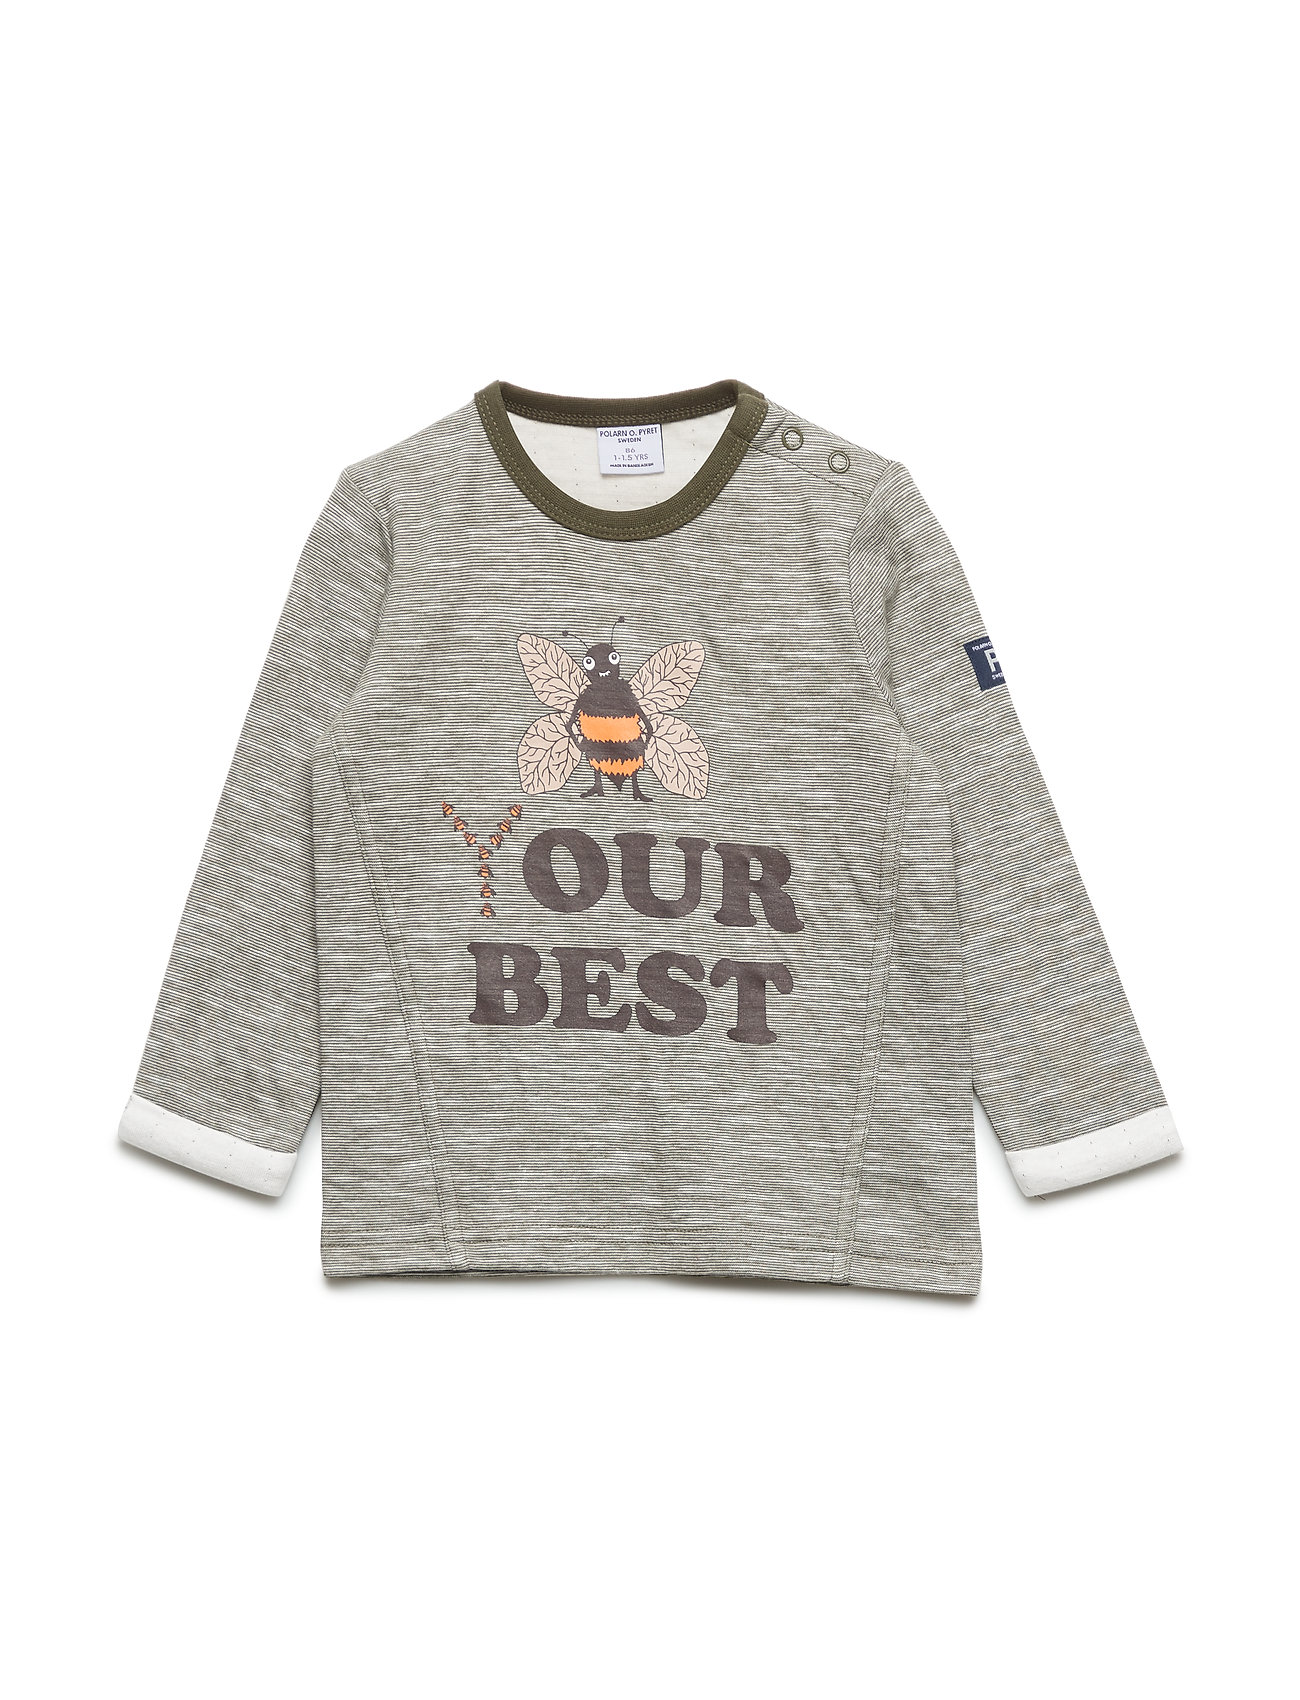 Polarn O. Pyret Top l/s w Application Pre-School - OLIVE NIGHT